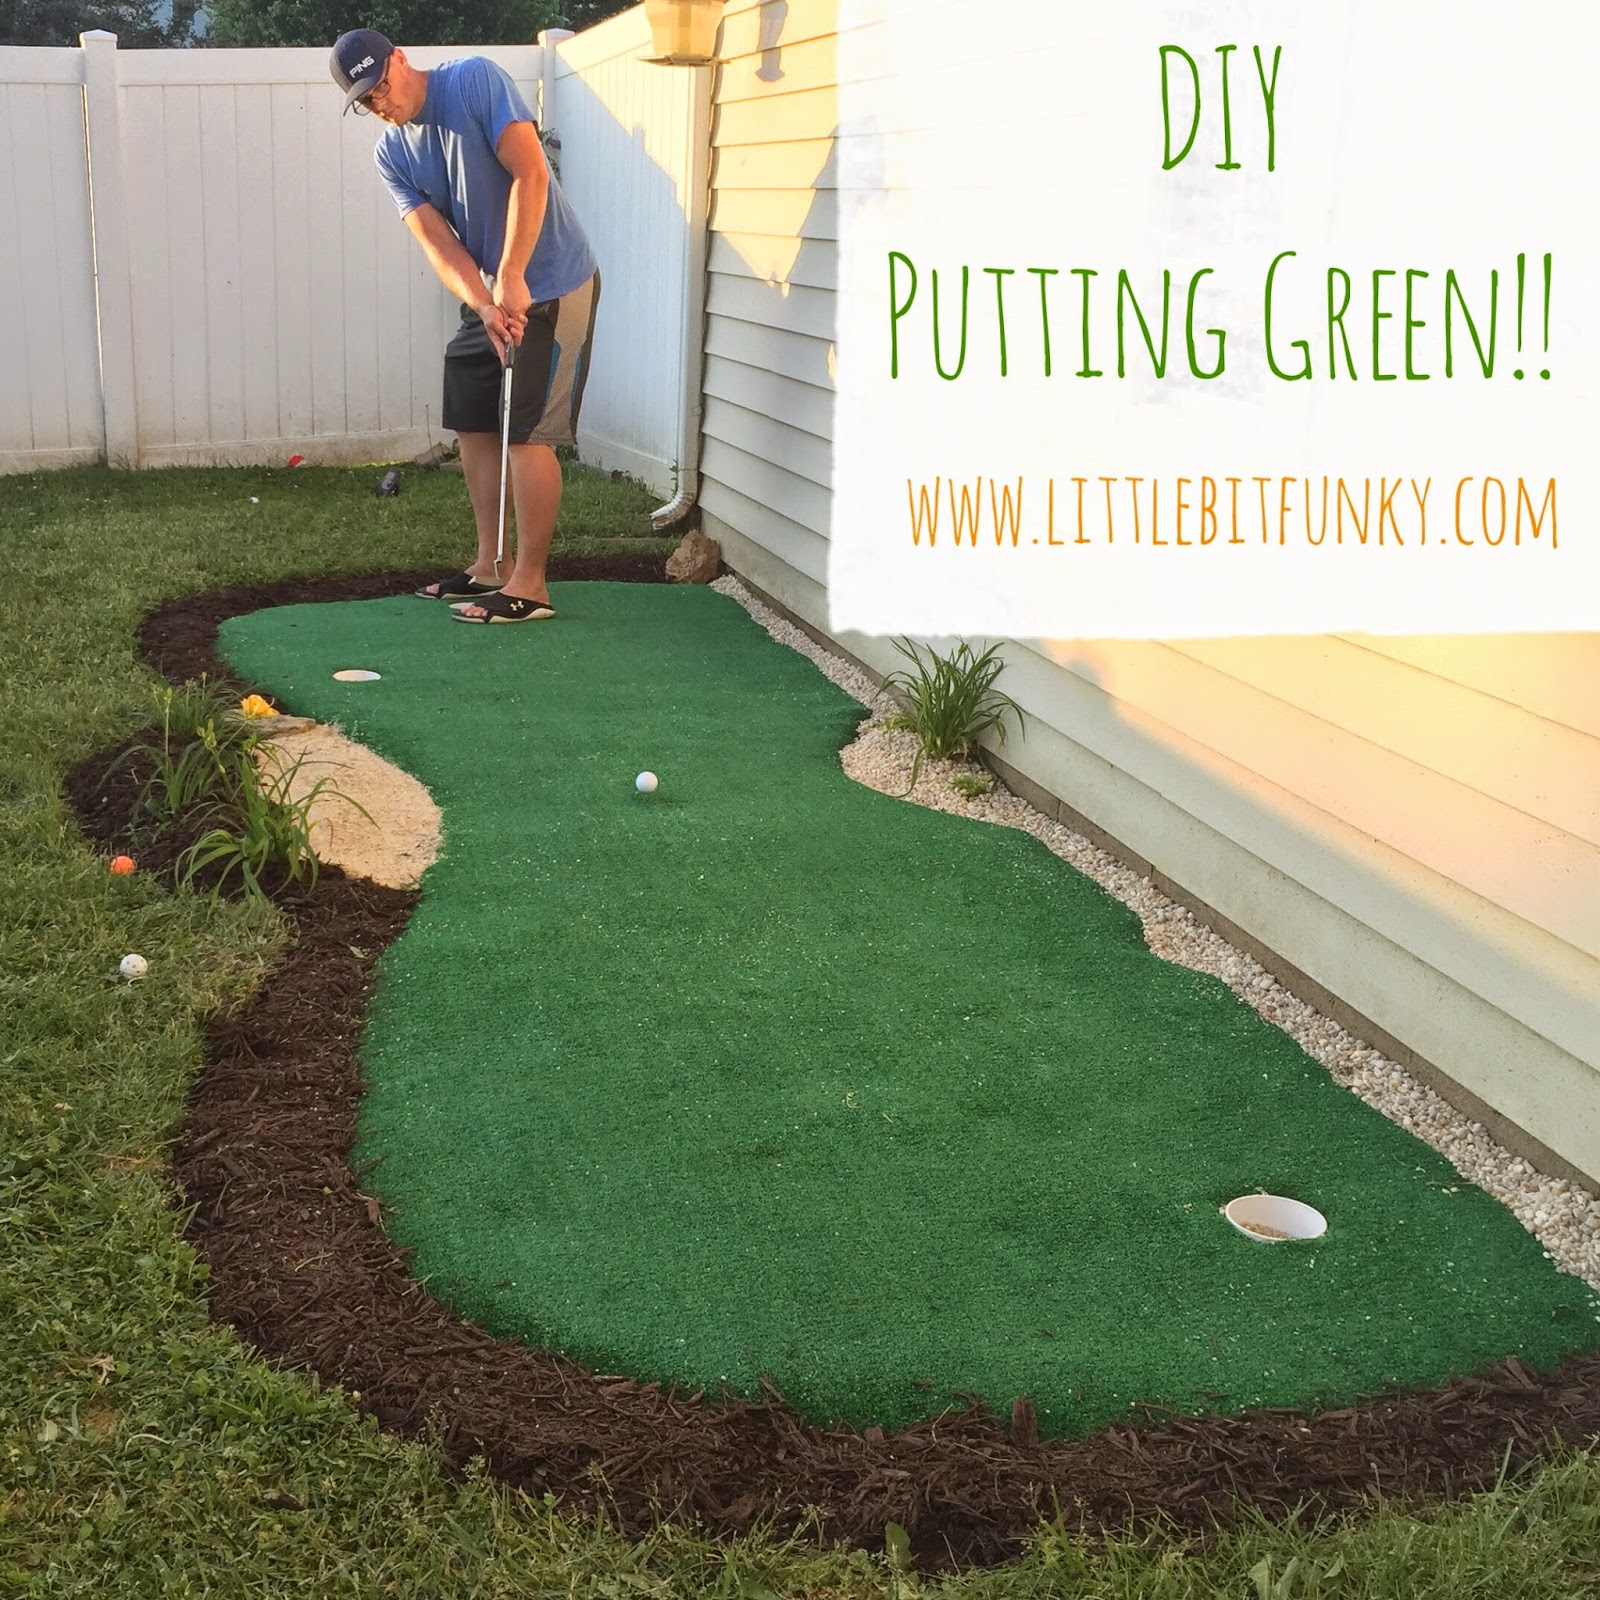 how to make a putting green in backyard large and beautiful